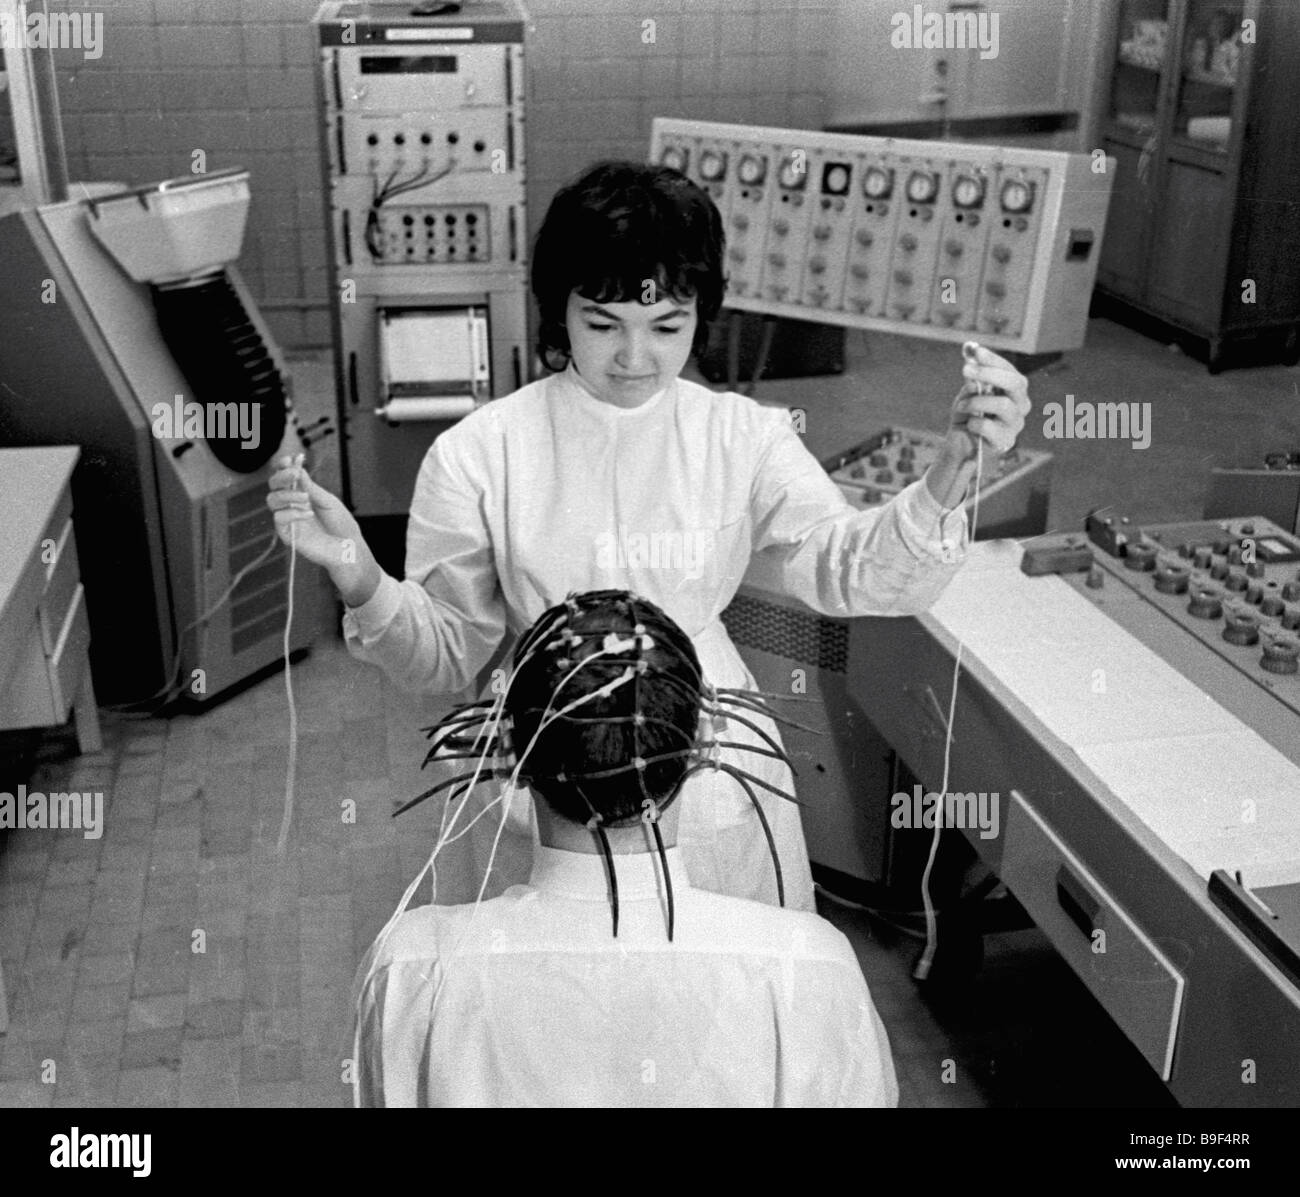 Measuring brain functions an electroencephalogram neurosurgery department Sklifosovsky First Aid Research Institute - Stock Image